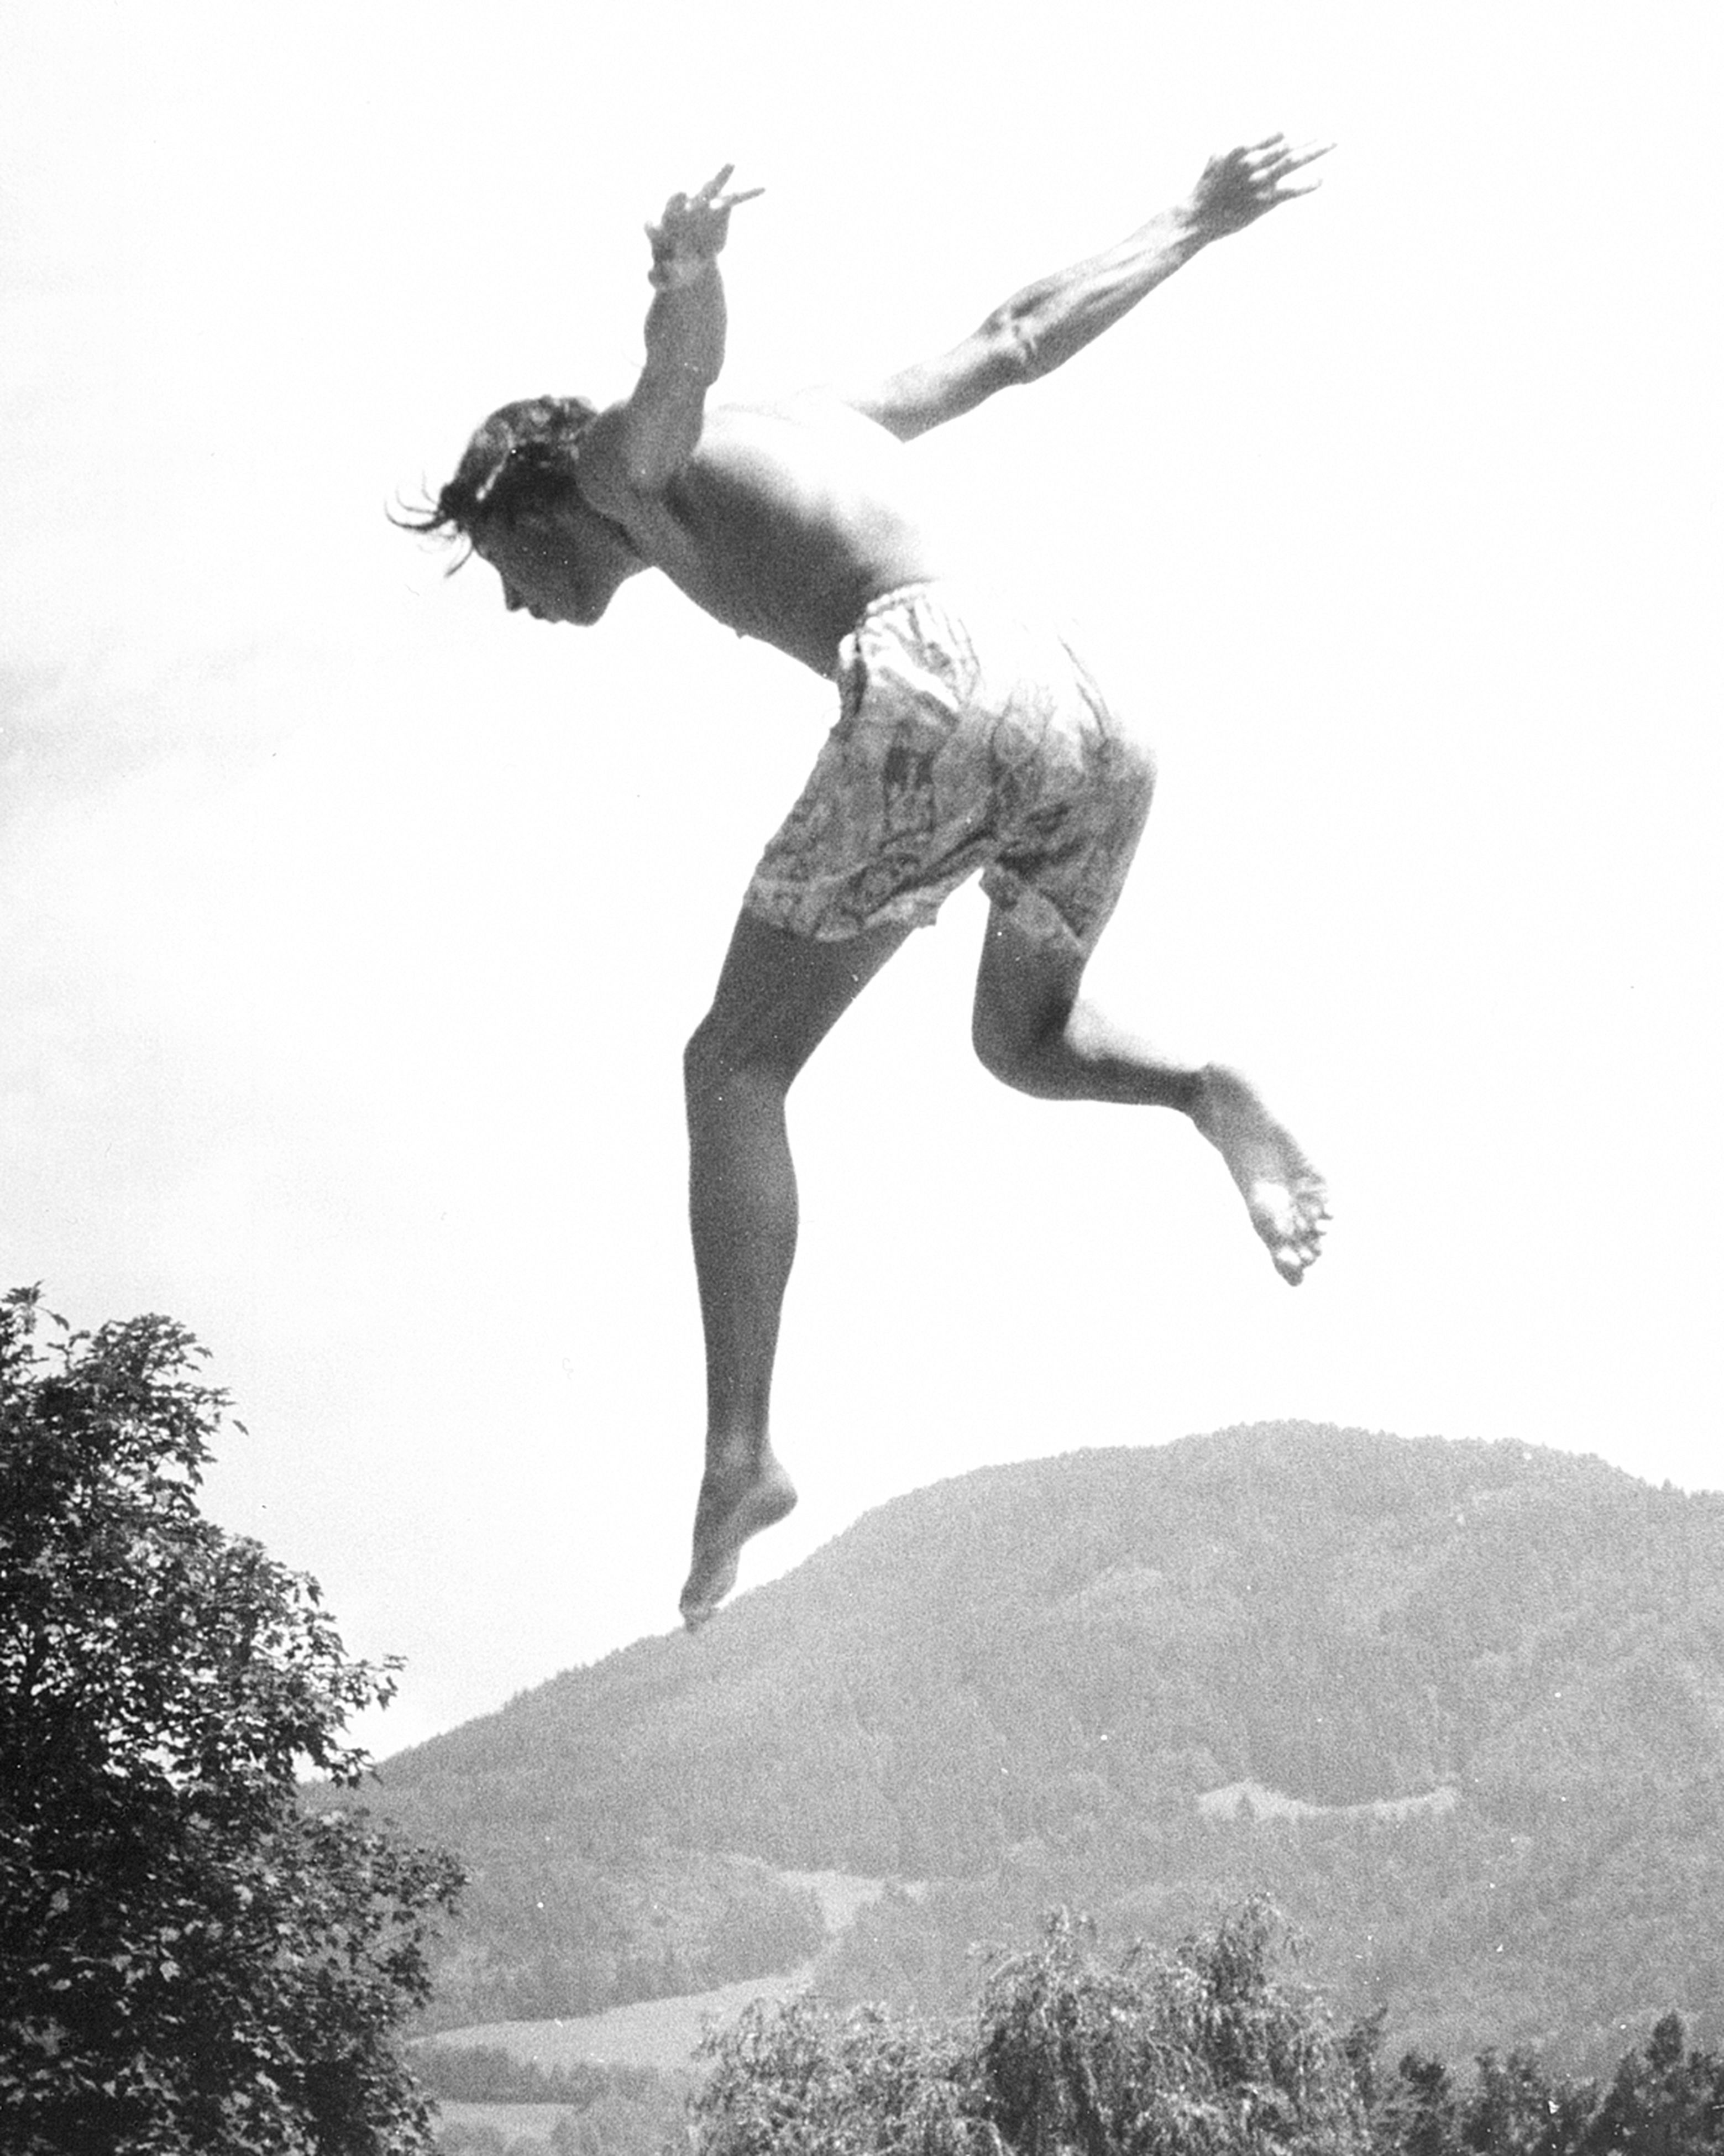 full length, jumping, mid-air, lifestyles, leisure activity, low angle view, clear sky, freedom, arms outstretched, carefree, tree, vitality, arms raised, nature, men, side view, enjoyment, day